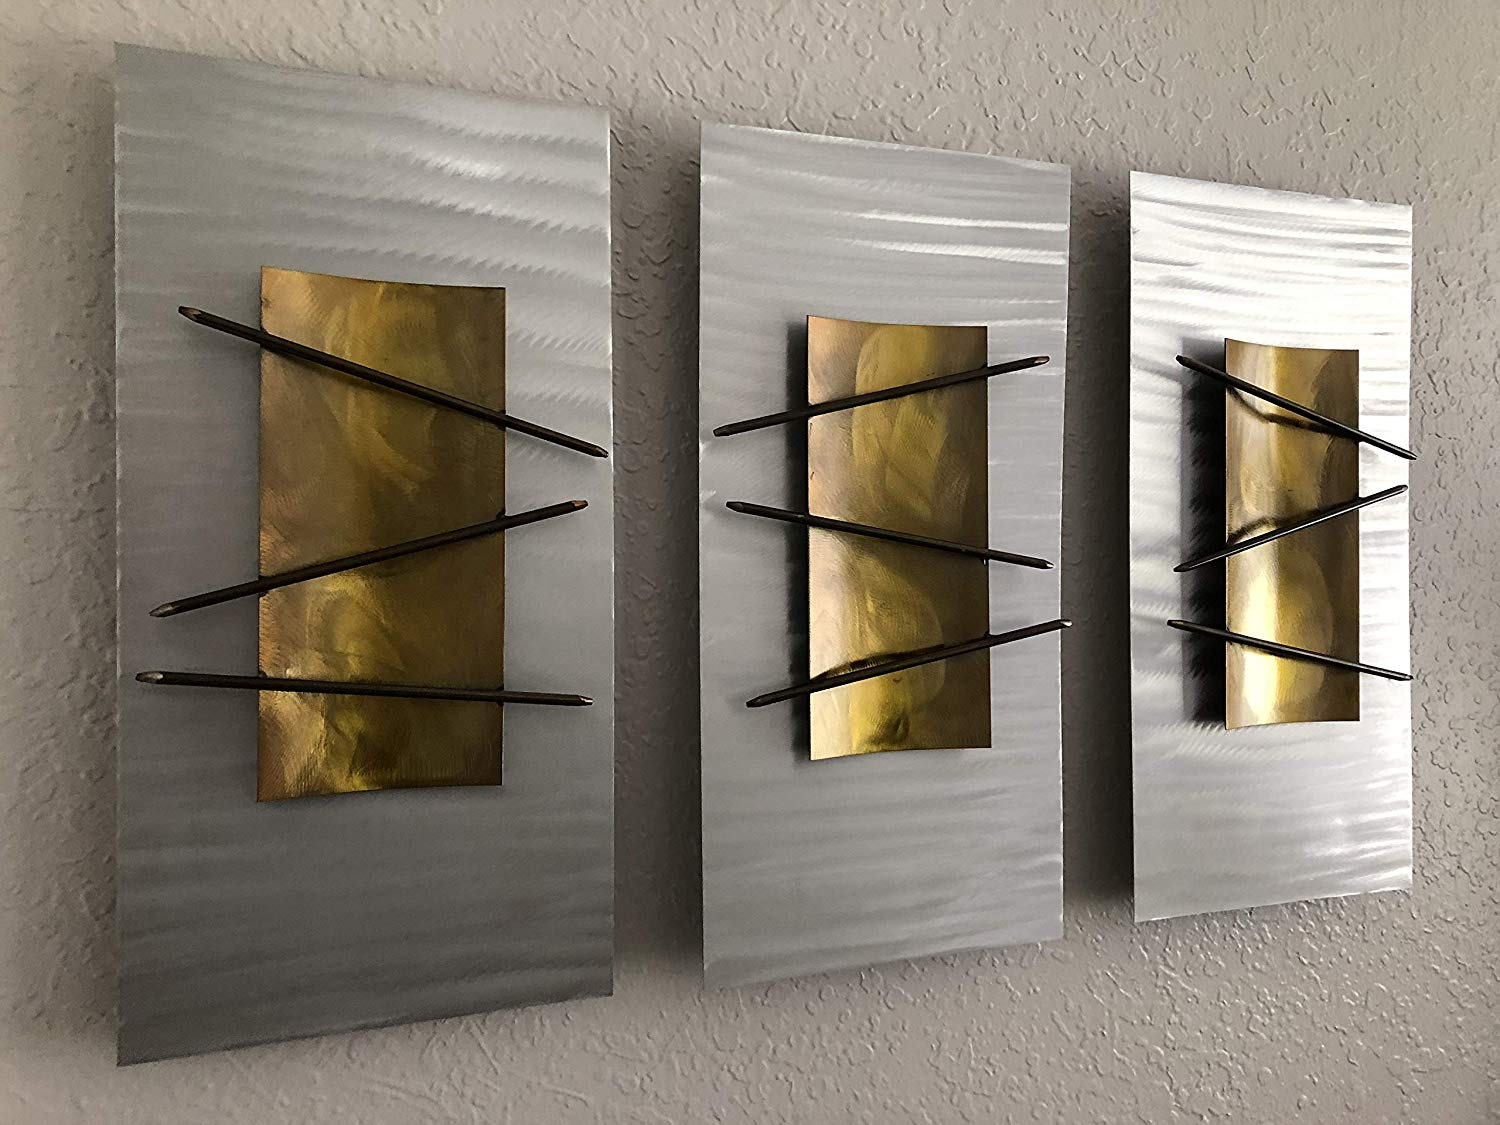 3 piece metal wall art rot iron get quotations piece metal wall art cheap piece art find deals on